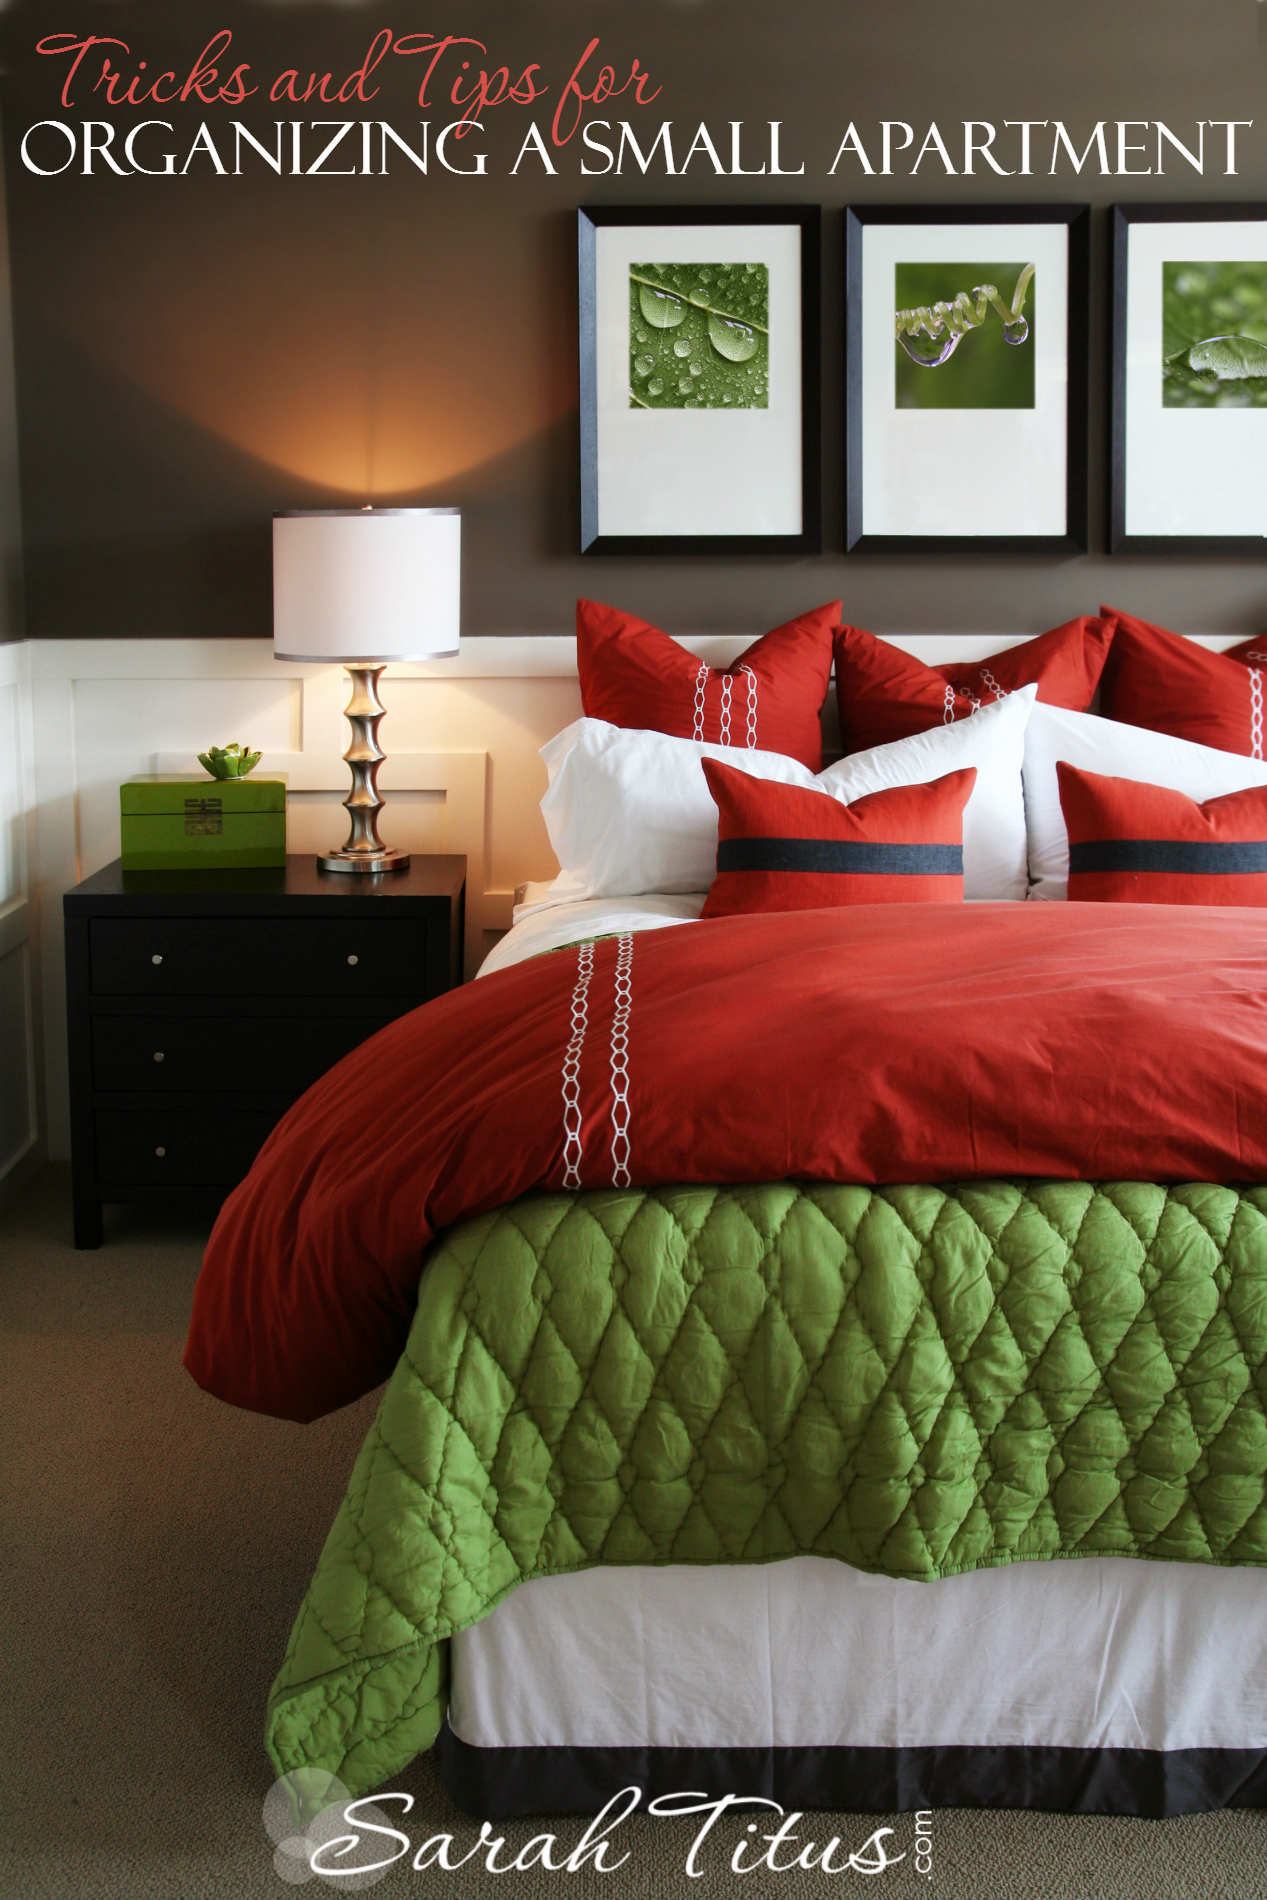 Tricks and tips for organizing a small apartment sarah titus for How to decorate a red bedroom